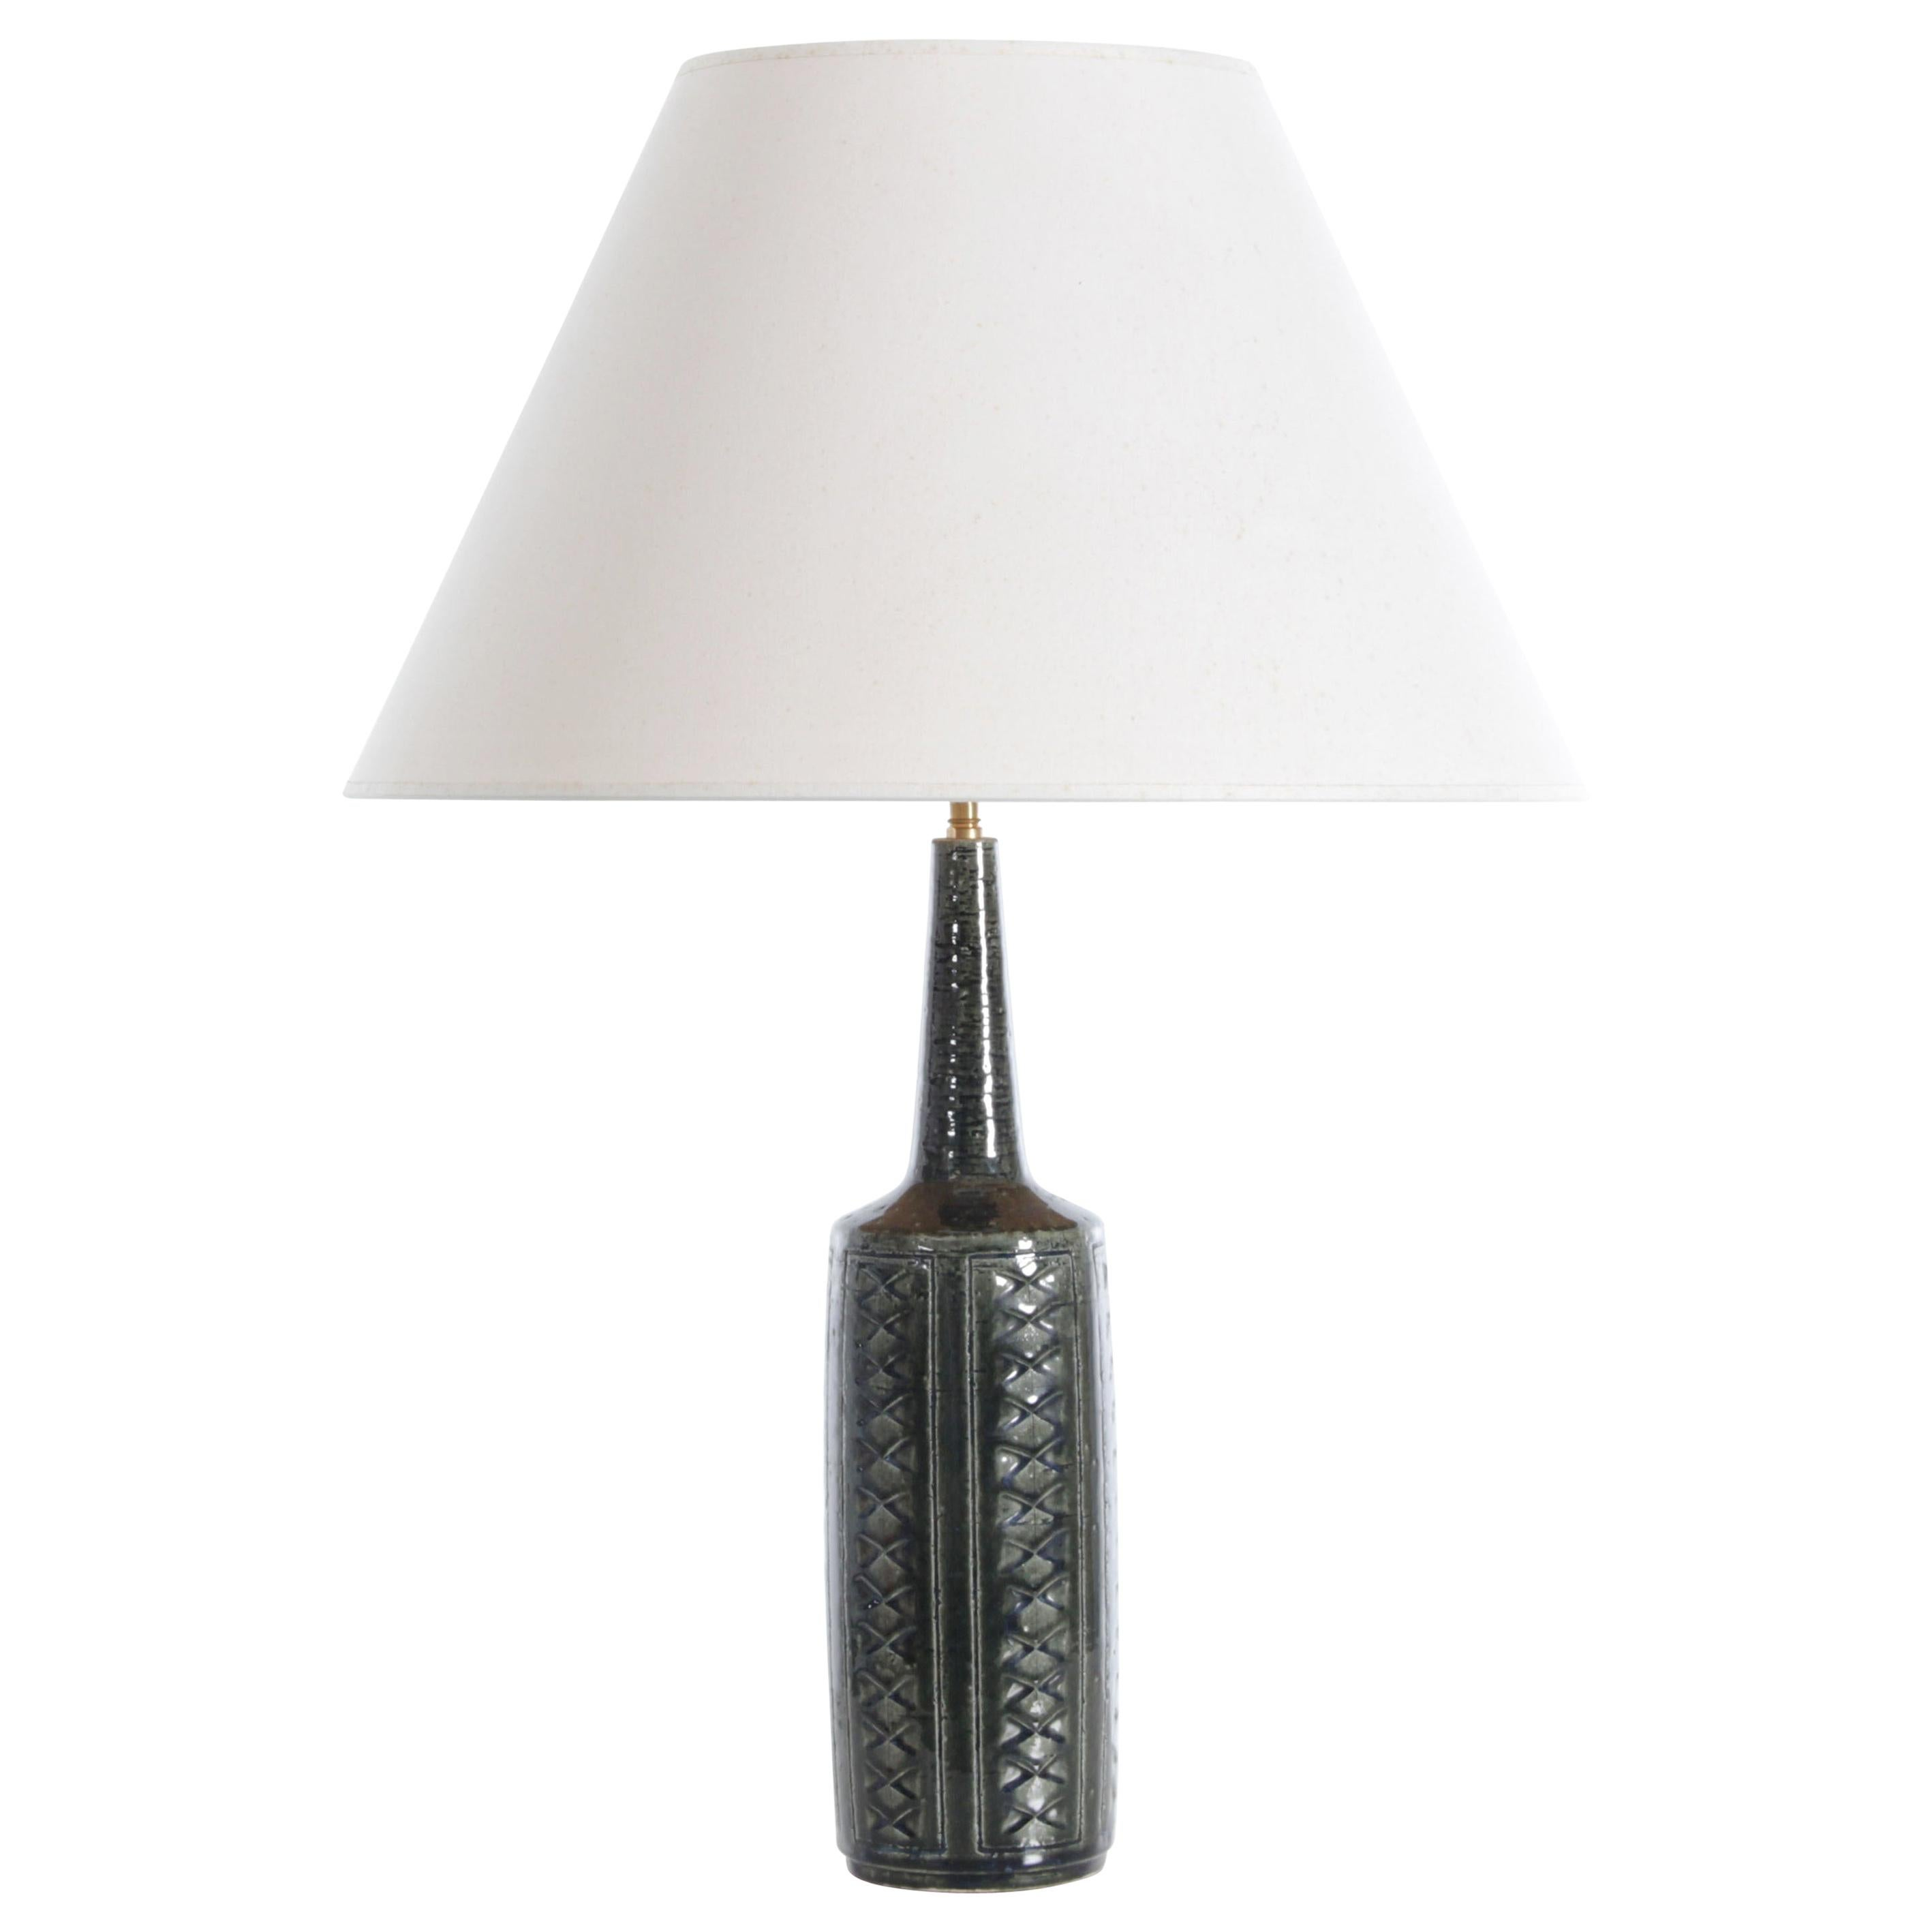 Mid-Century Modern Scandinavian Ceramic Table Lamp by Palshus